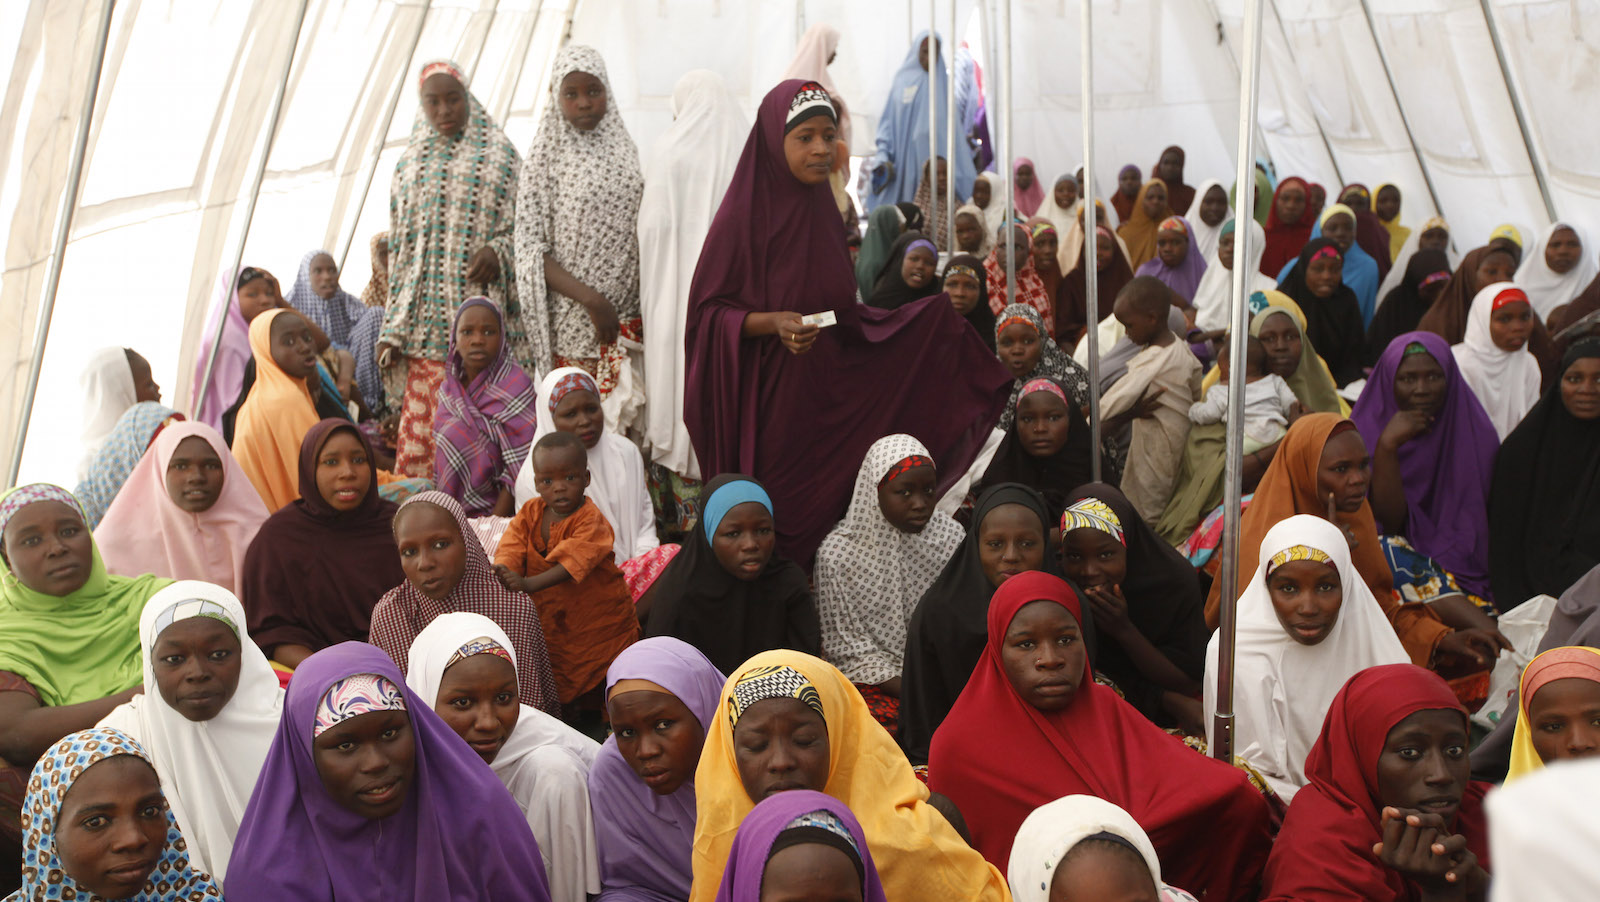 In this photo taken Monday, Dec. 7, 2015, children displaced by Boko Haram in an attack on their villages receive lectures in  a camp in Maiduguri, Nigeria. Attacks by Islamic extremist group Boko Haram in northeastern Nigeria and neighboring countries have forced more than 1 million children out of school, heightening the risk they will be abused, abducted or recruited by armed groups, the United Nations children's agency said Tuesday, Dec. 22, 2015. ()